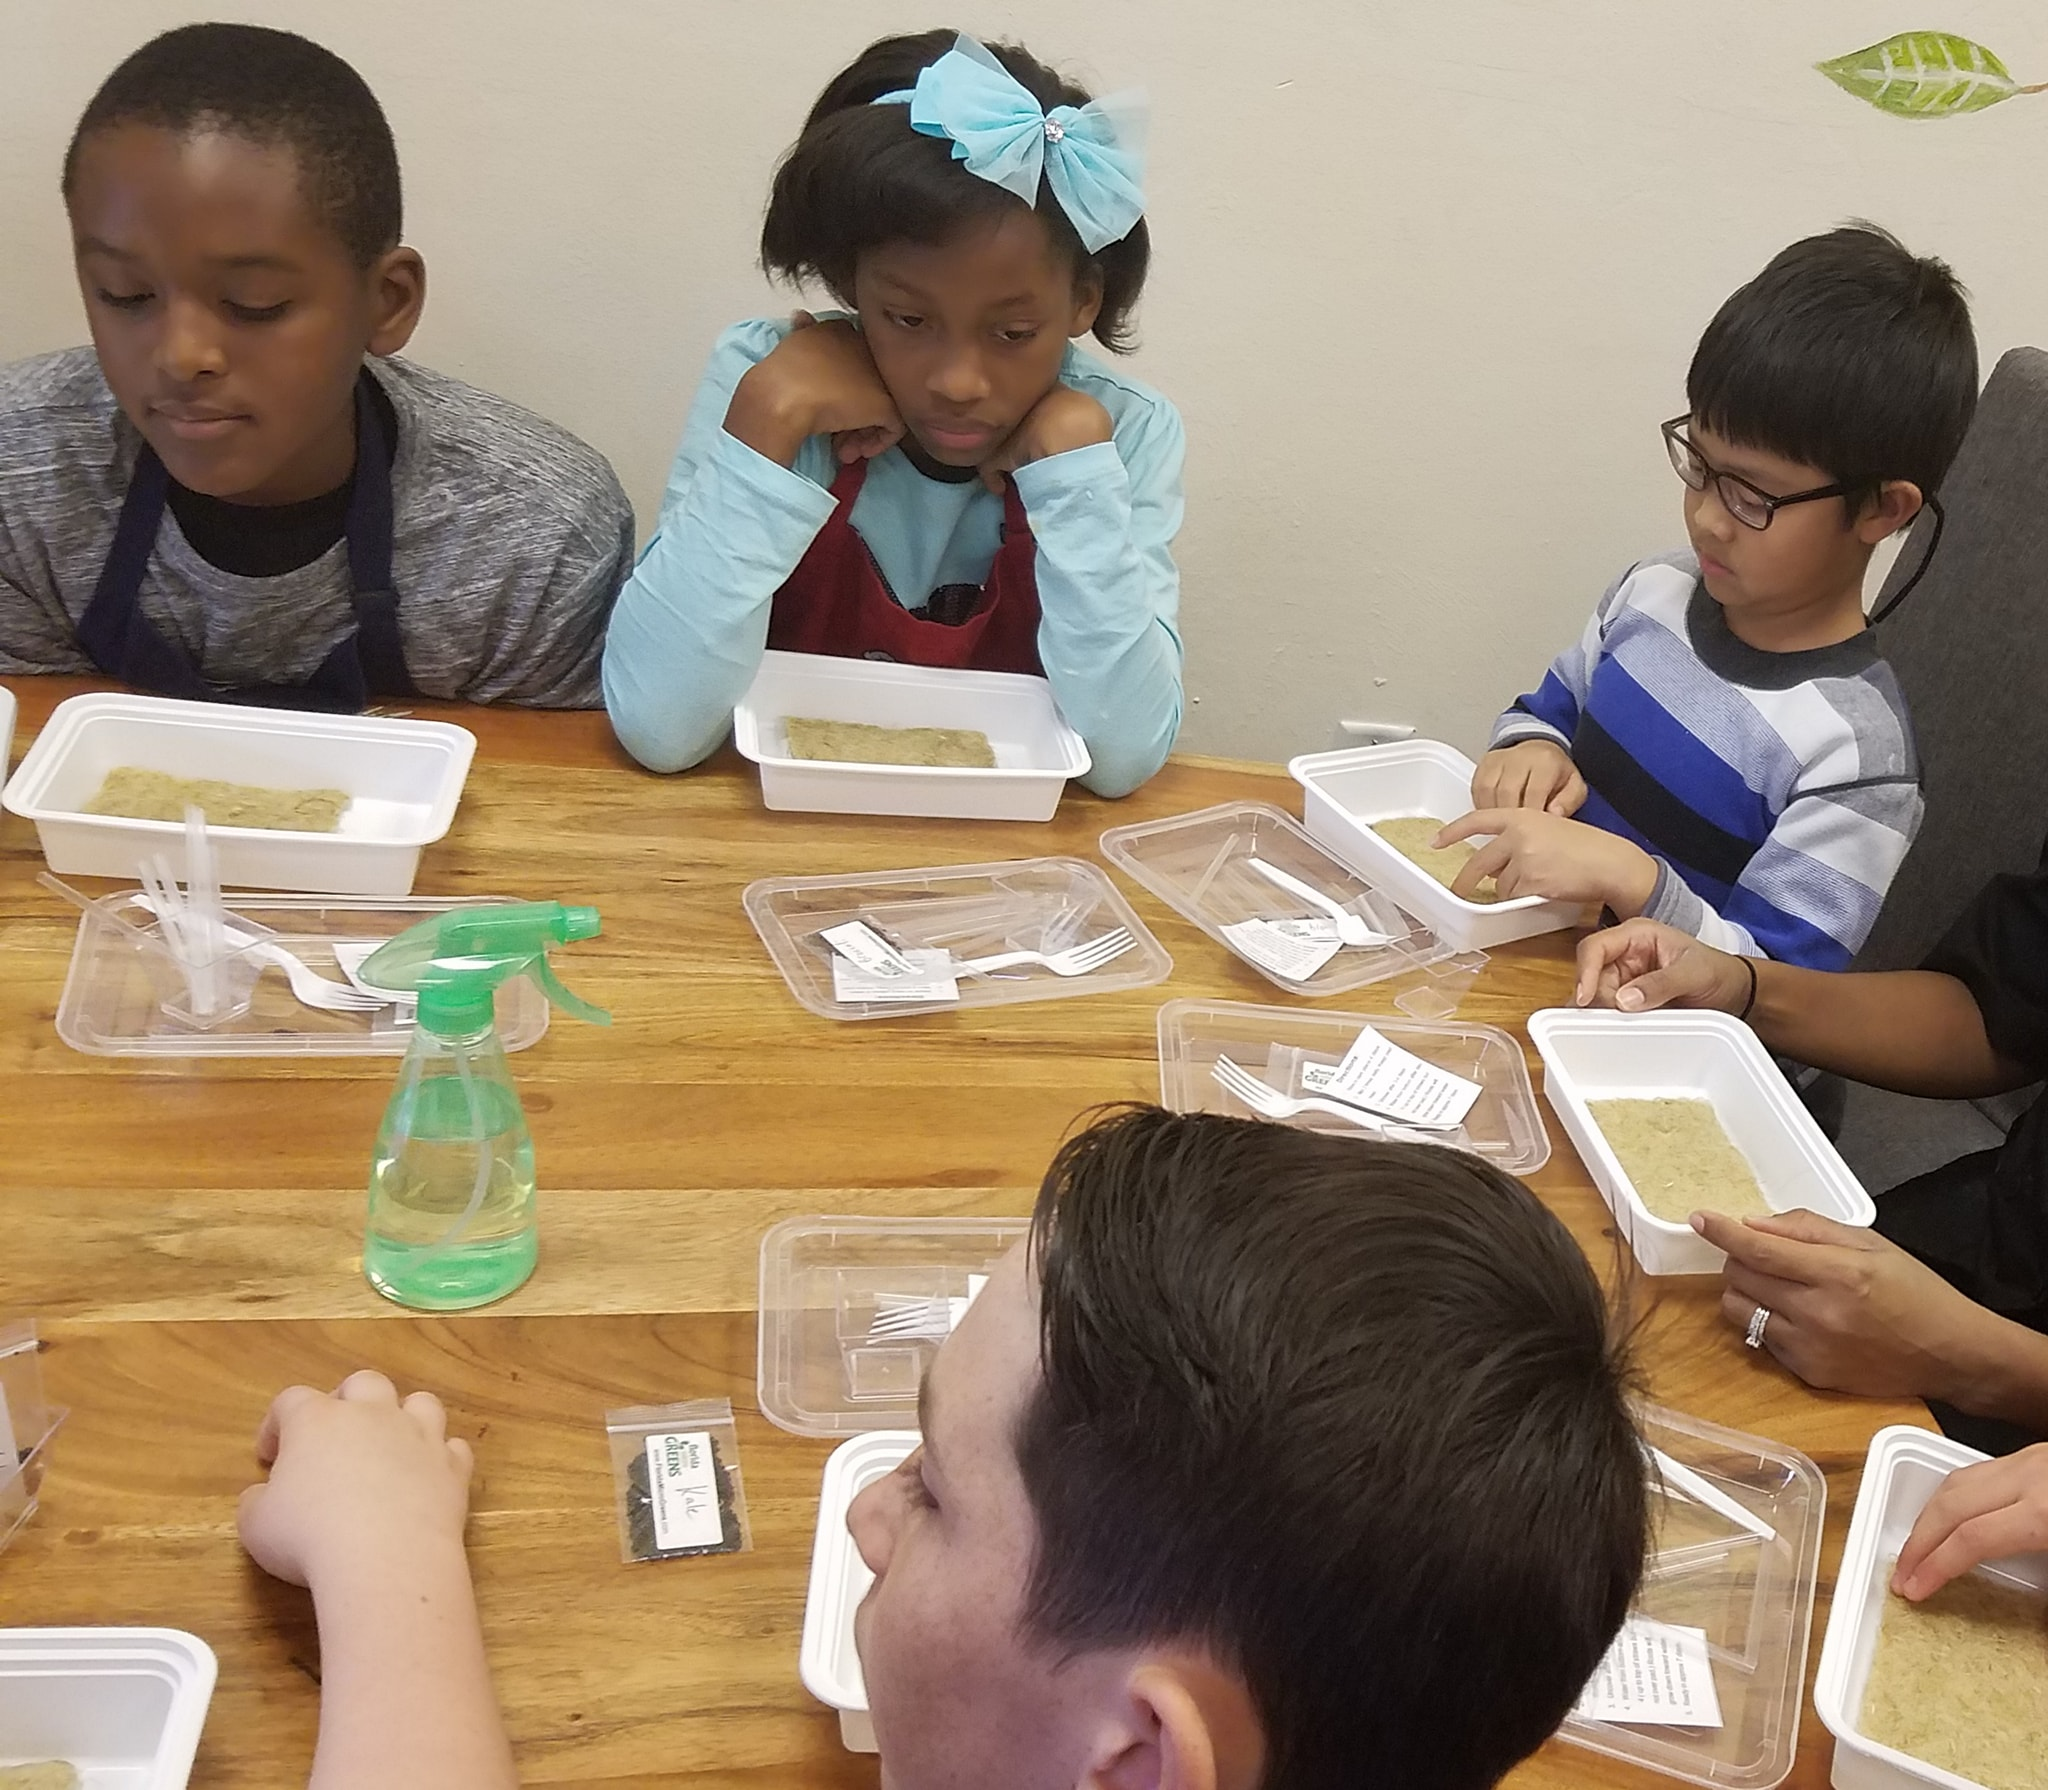 florida-microgreens-little-leaves-science-camp-picture-students